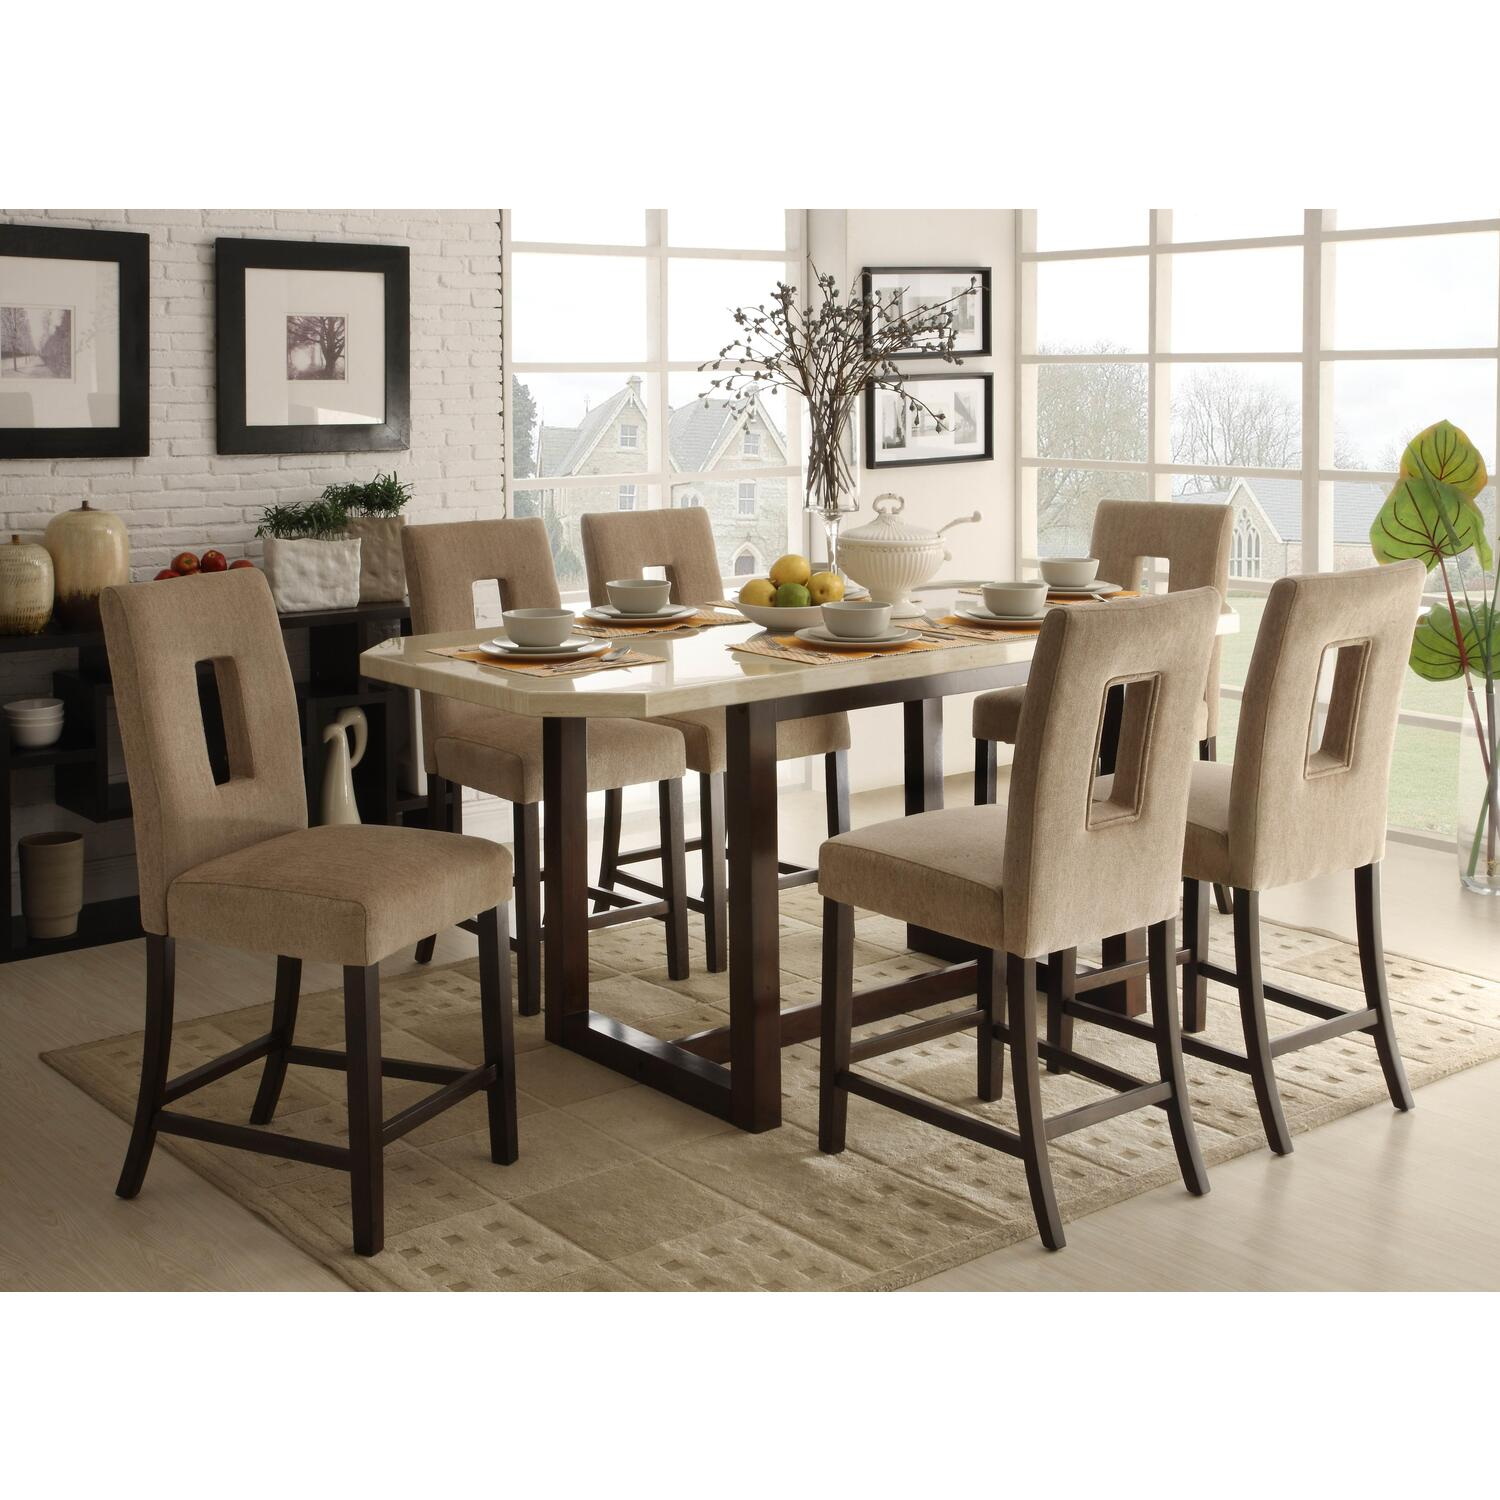 36x5 Reiss Counter Height Table Set - From $1072.14 To $1344.09